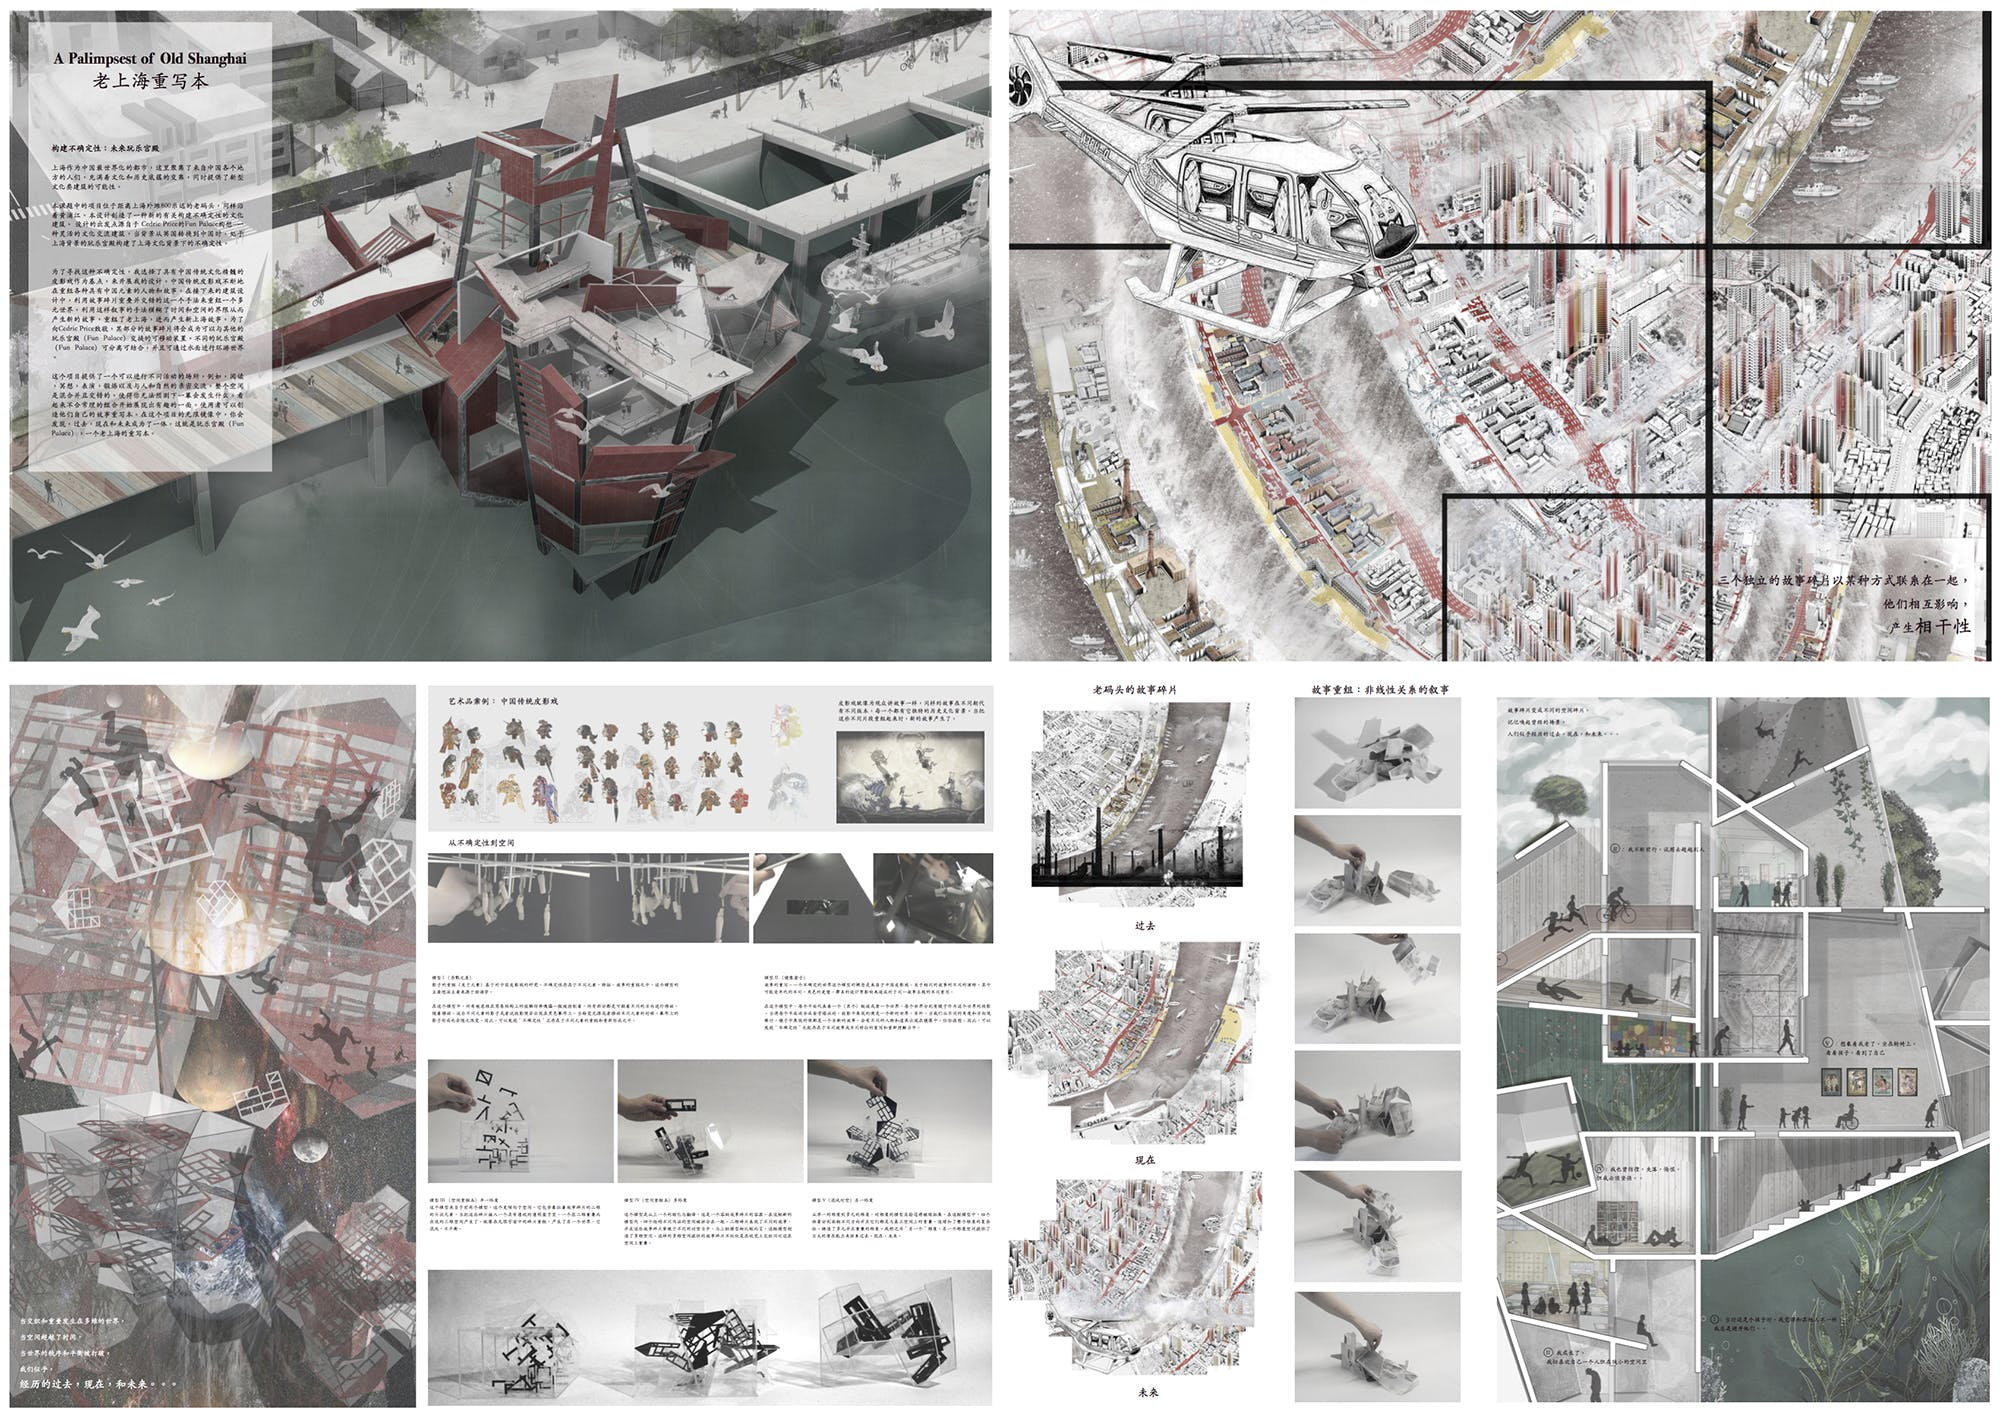 Li Shaokang, ARC304 - Final Year Project, competition boards (September 2017)